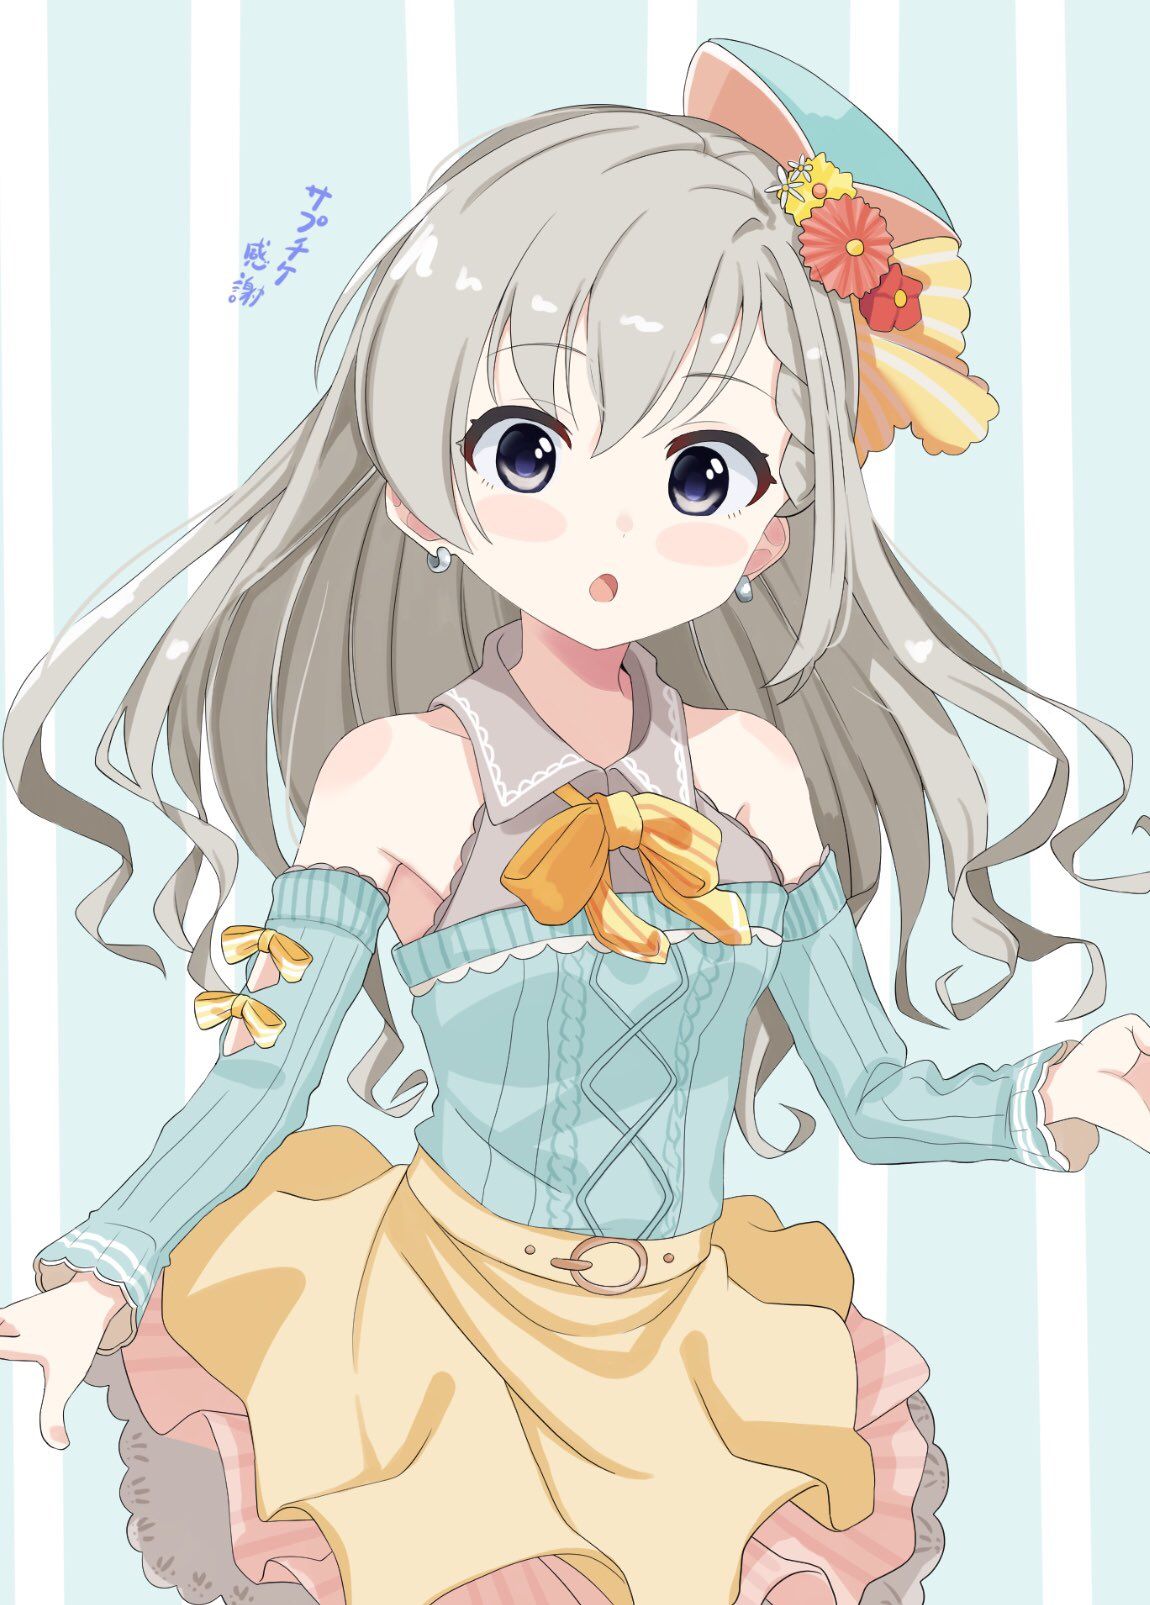 1girl :o aran_sweater bangs blue_background blue_headwear blue_sleeves blue_sweater blush_stickers bow brown_skirt collared_shirt detached_sleeves earrings eyebrows_visible_through_hair flower grey_hair grey_shirt hair_between_eyes hair_flower hair_ornament hat highres hisakawa_hayate idolmaster idolmaster_cinderella_girls idolmaster_cinderella_girls_starlight_stage jewelry layered_skirt long_hair long_sleeves looking_at_viewer mini_hat open_mouth orange_bow pink_flower pink_skirt red_flower shirt shiwa_(siwaa0419) skirt sleeveless sleeveless_shirt solo striped striped_background striped_bow sweater tilted_headwear translation_request vertical-striped_skirt vertical_stripes very_long_hair violet_eyes white_flower yellow_bow yellow_flower